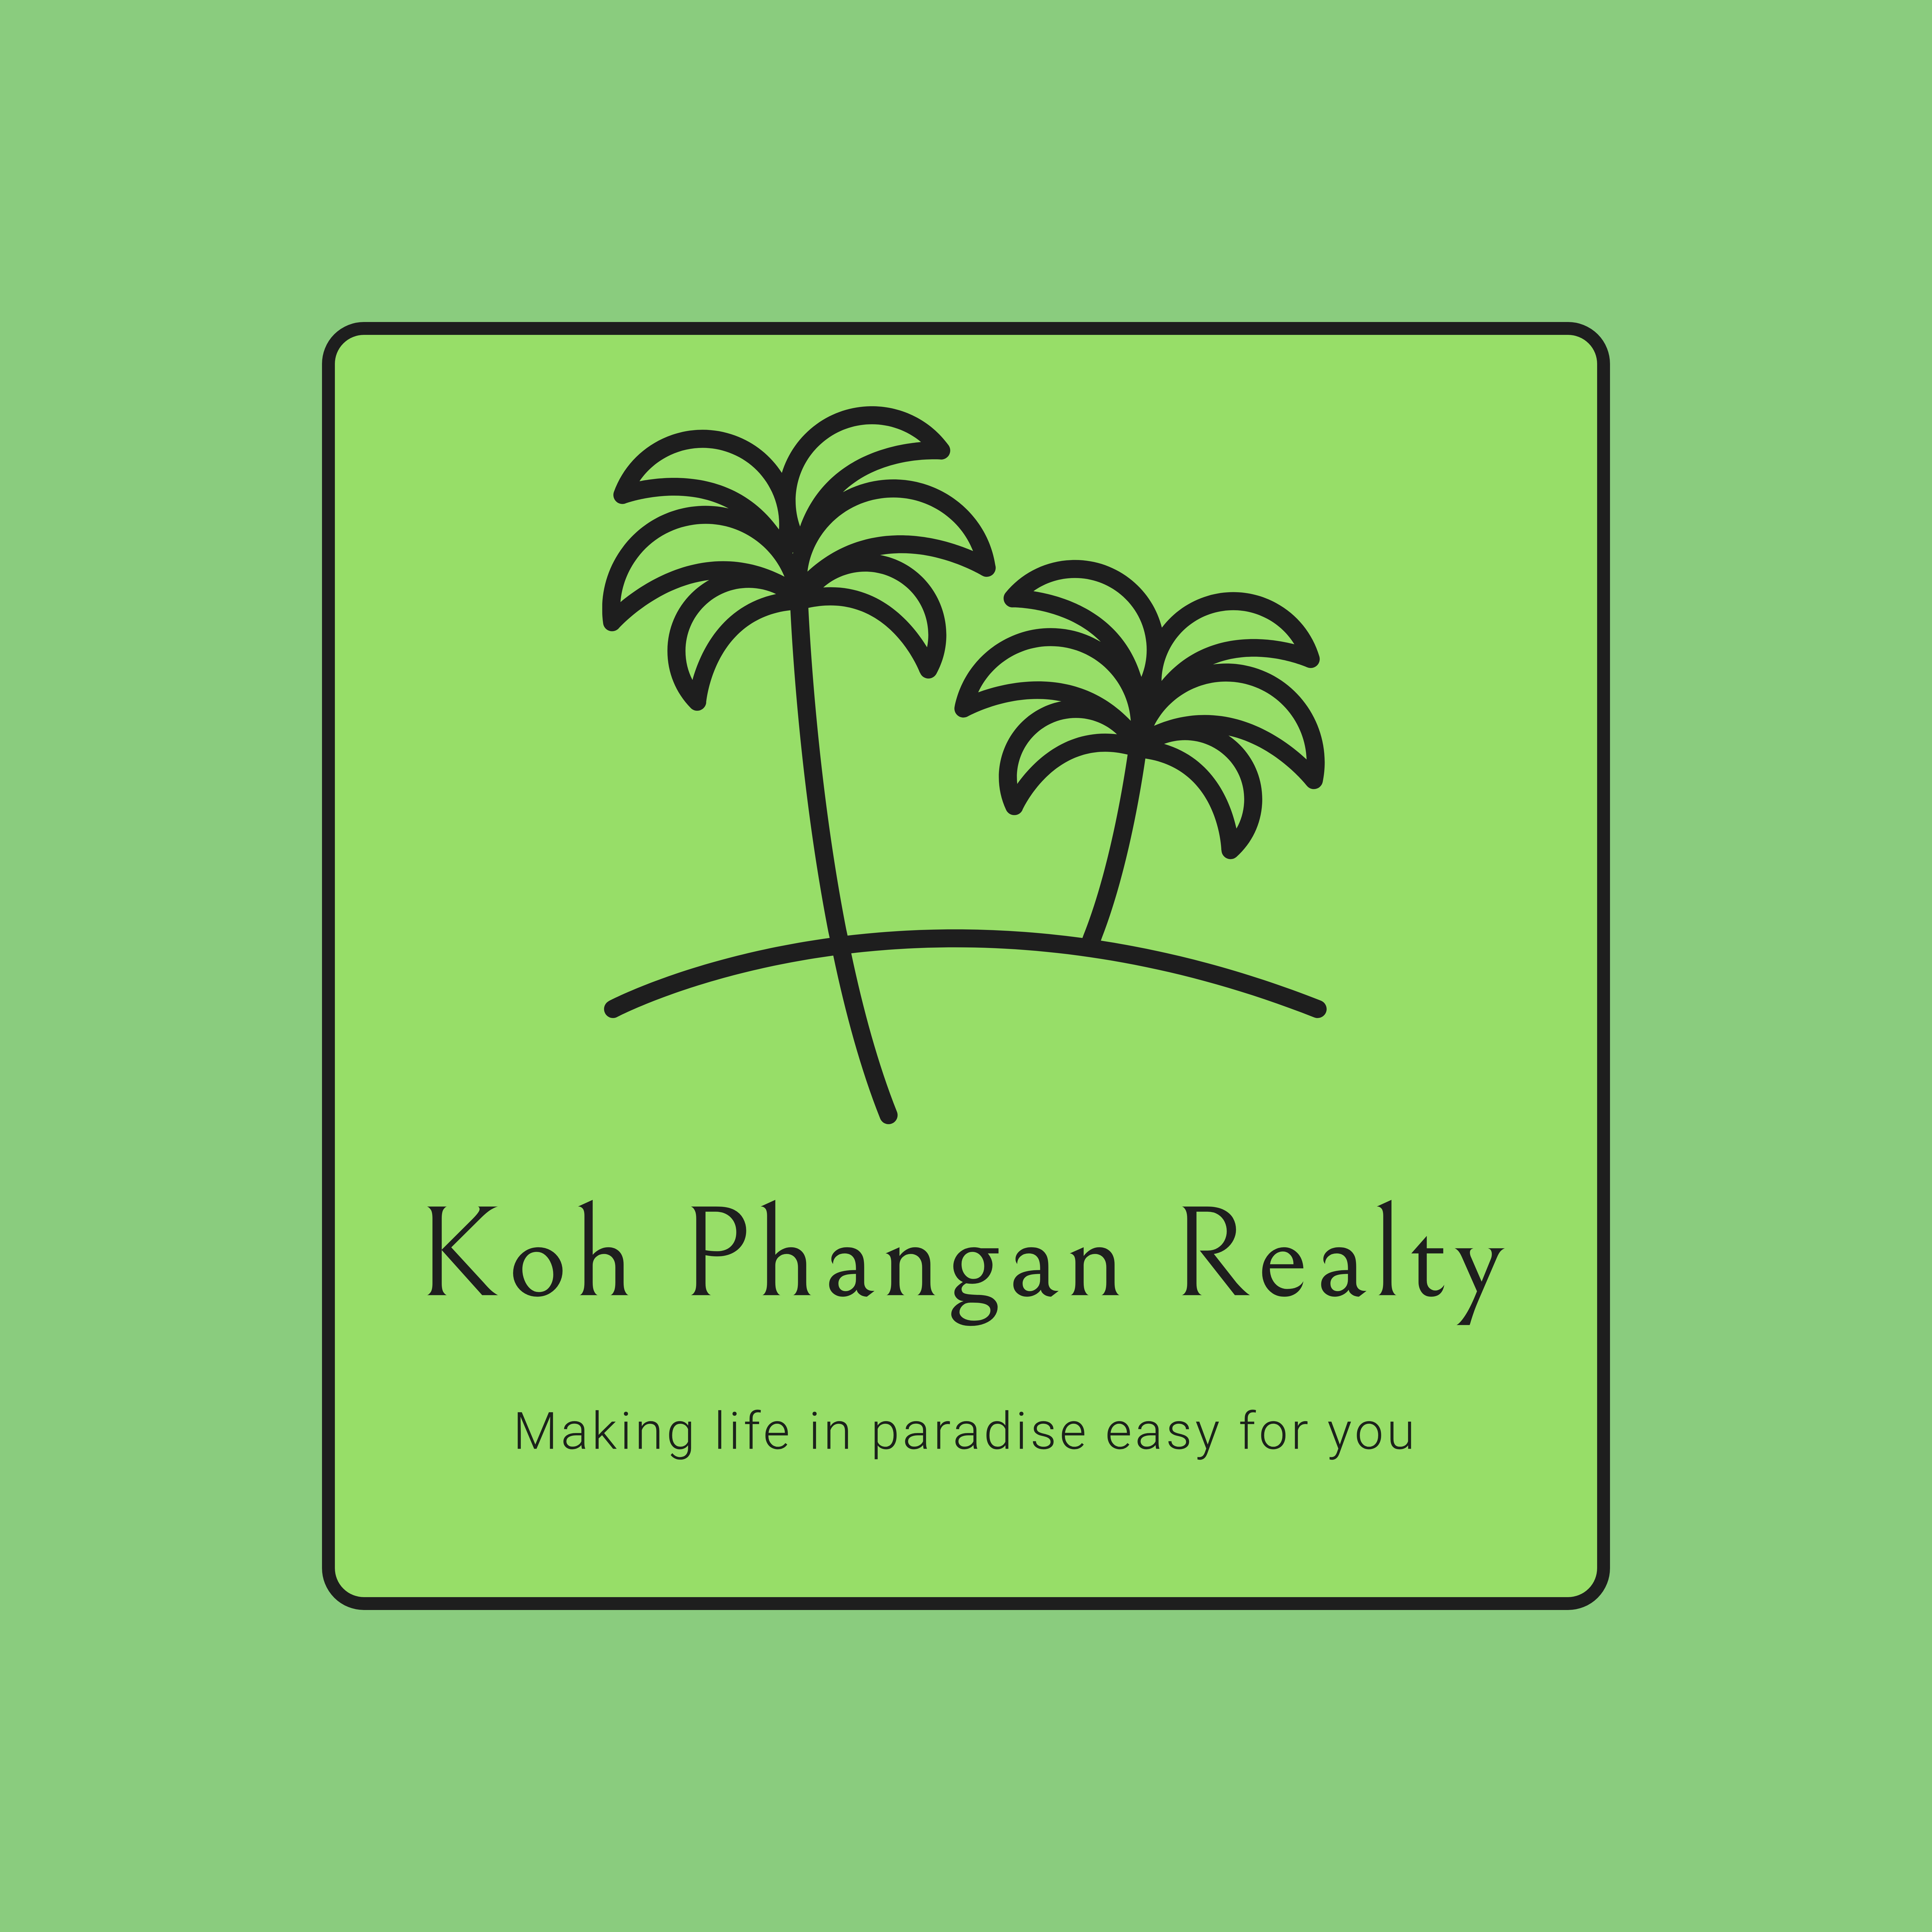 Koh Phangan Realty Co., Ltd.